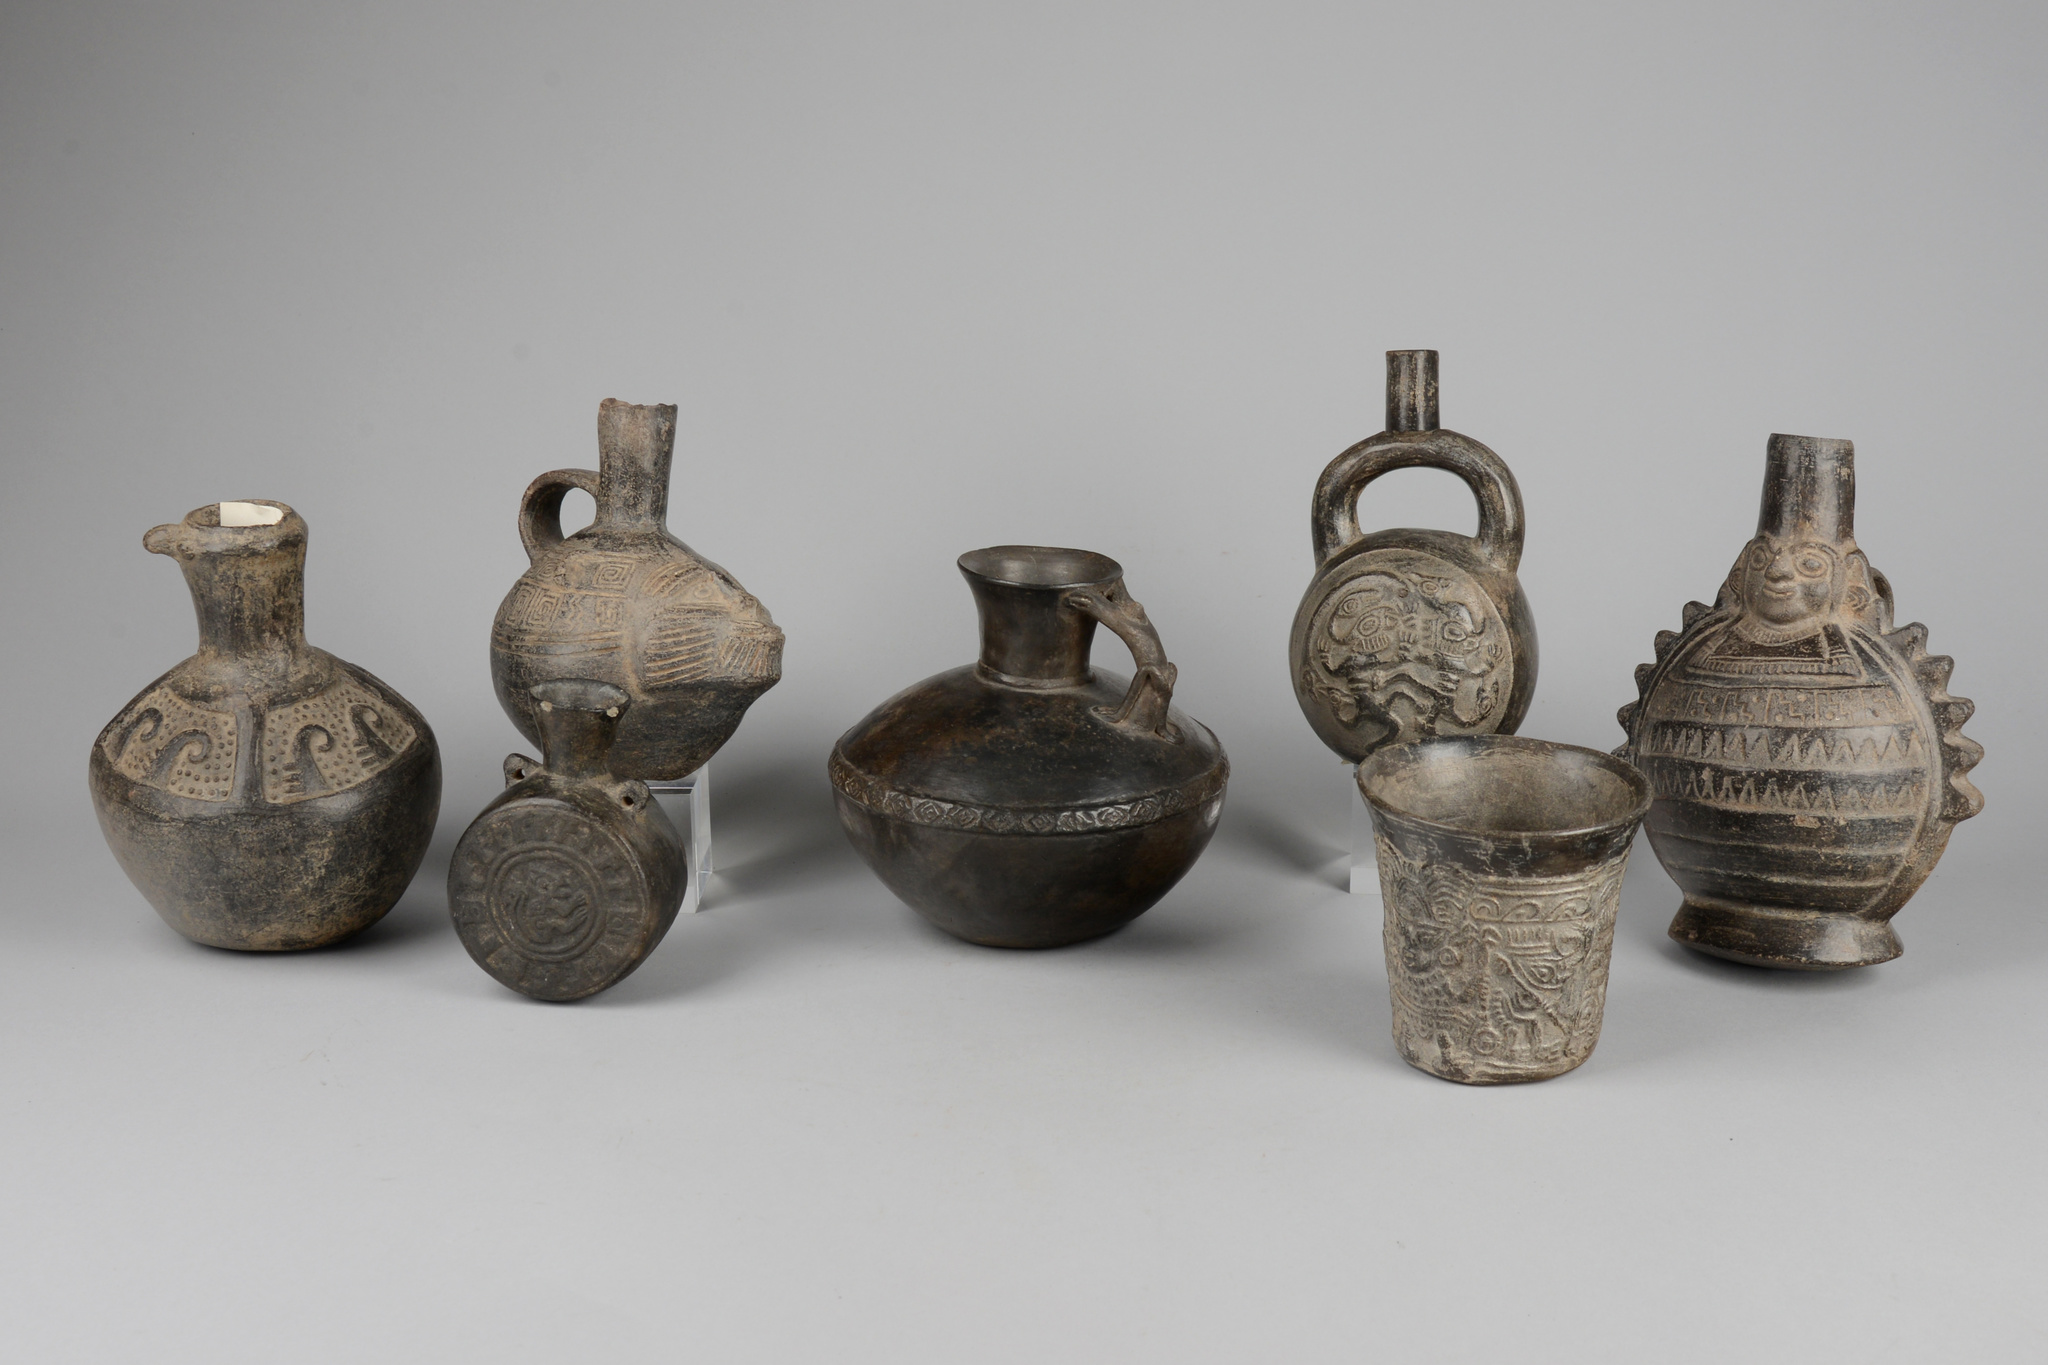 Group of receptacles